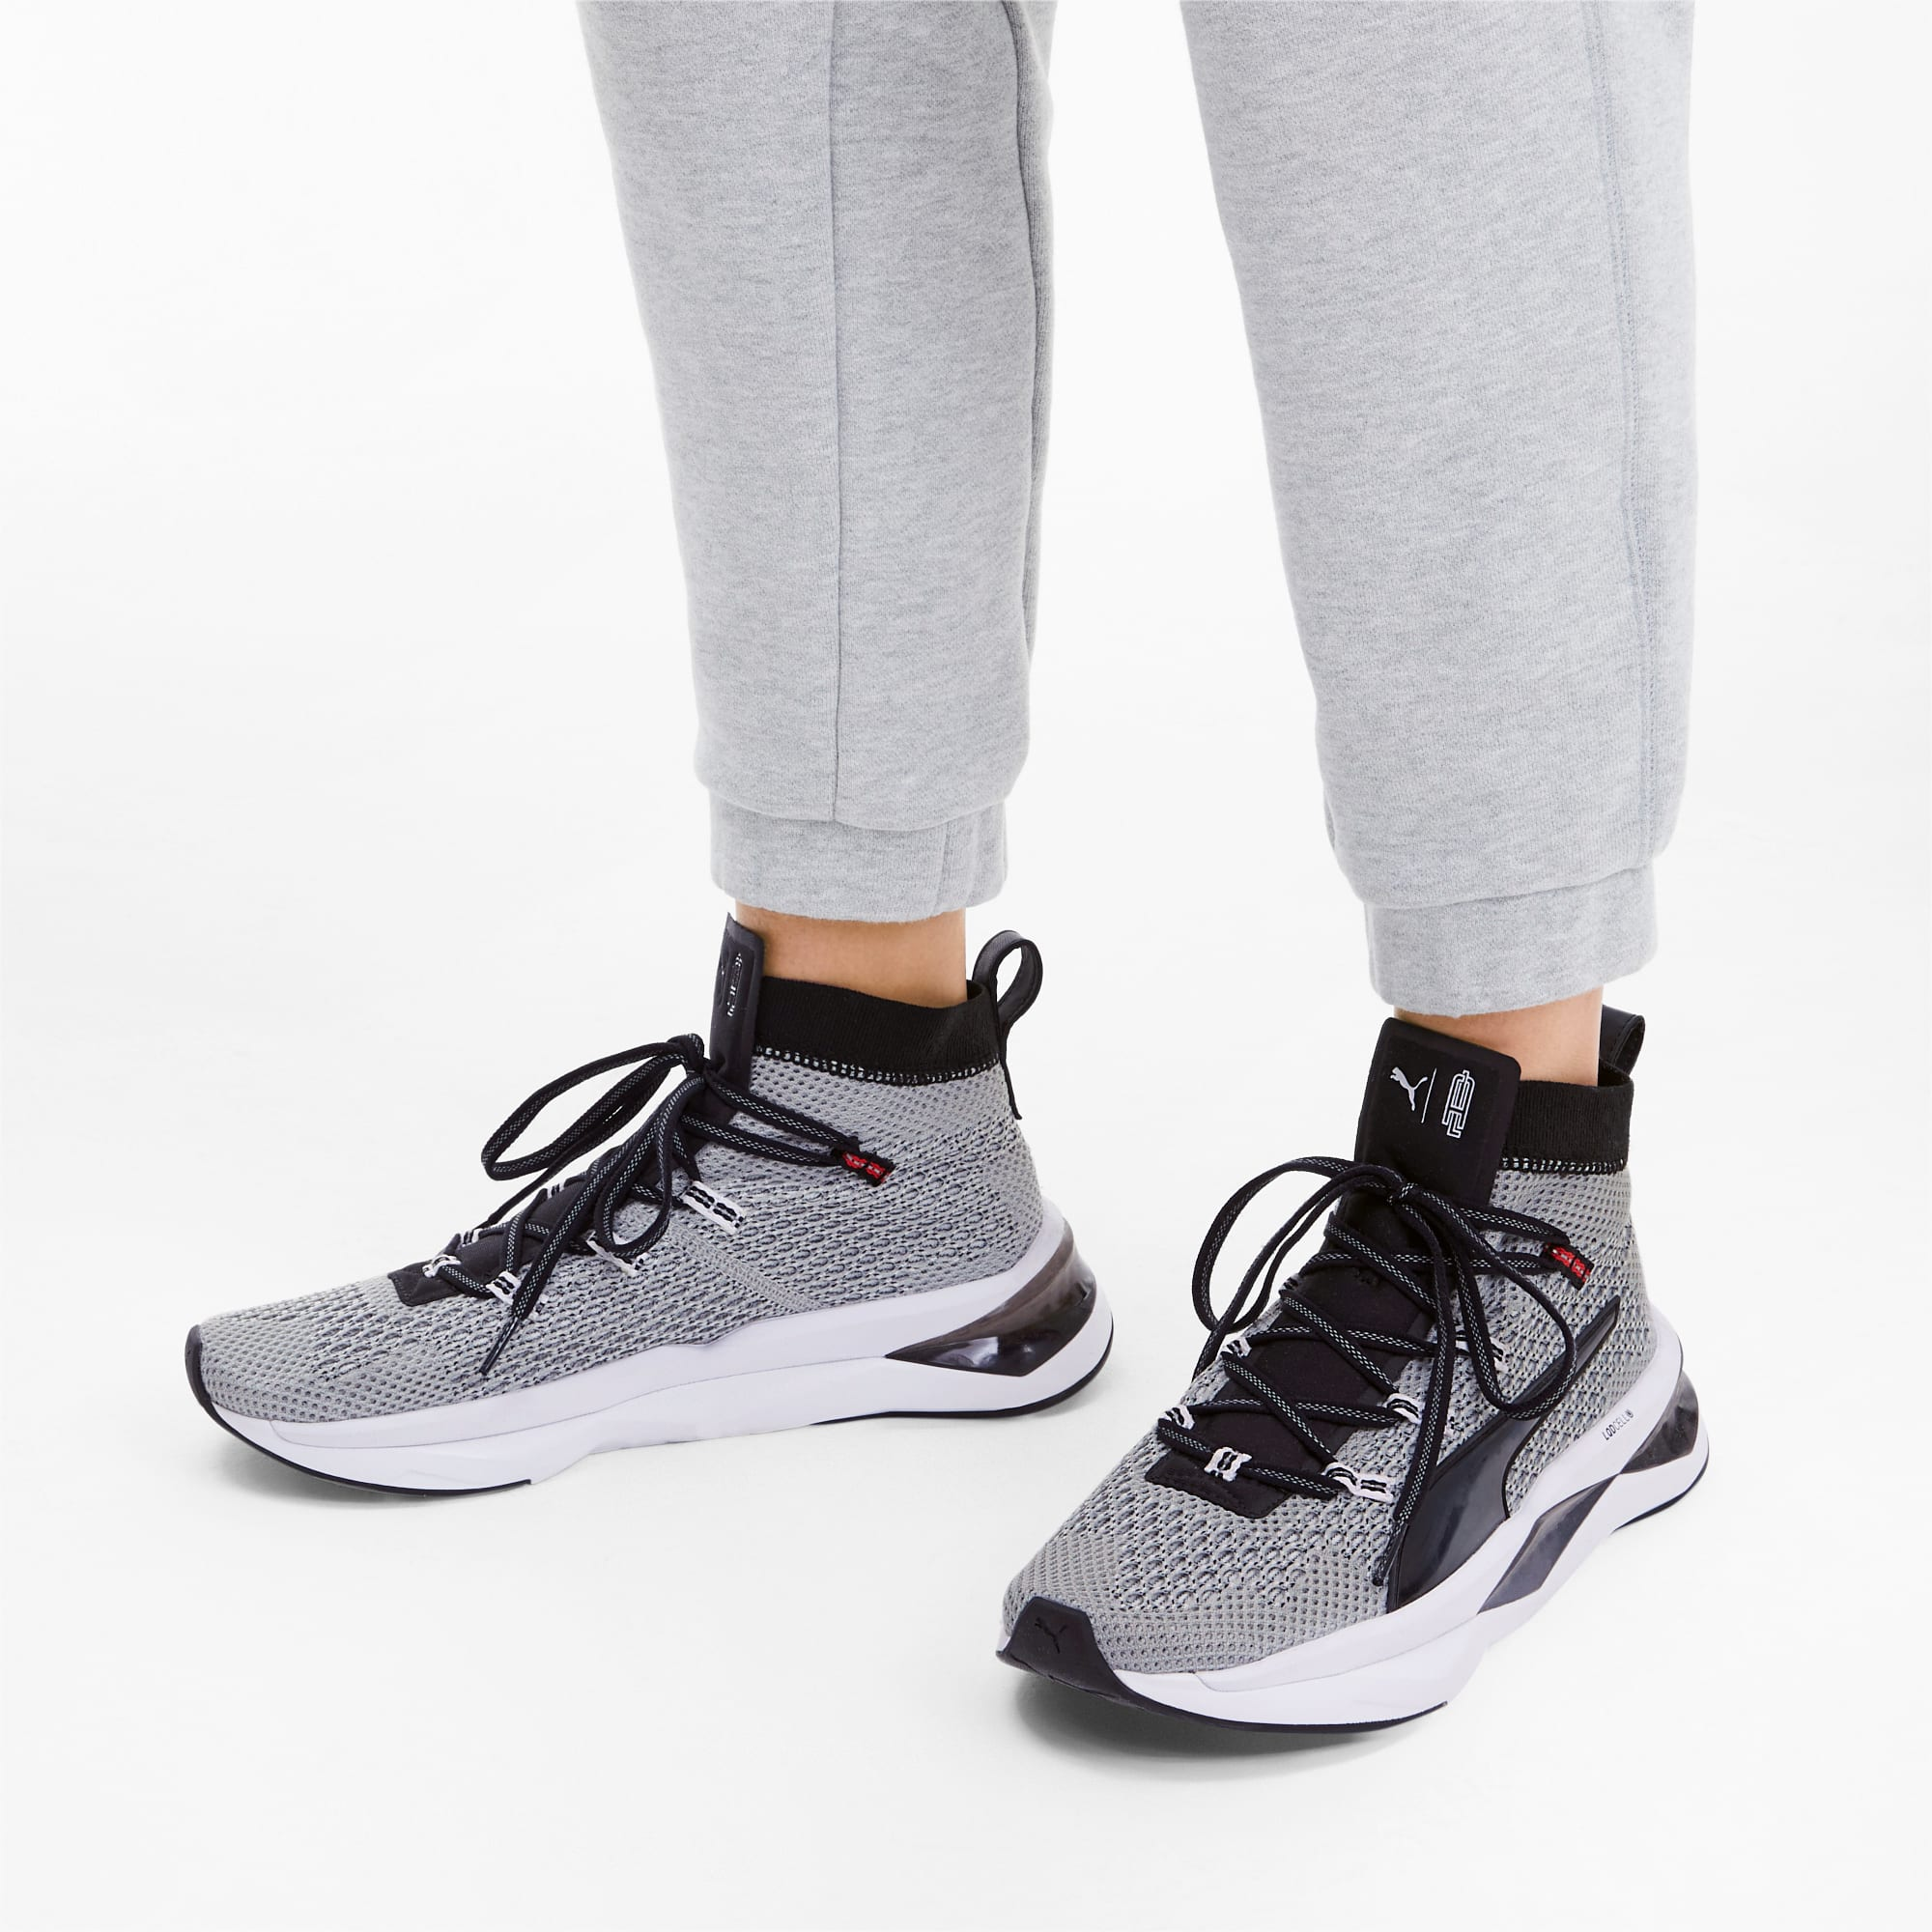 AL x PUMA LQDCELL Shatter XT Women's Training Shoes